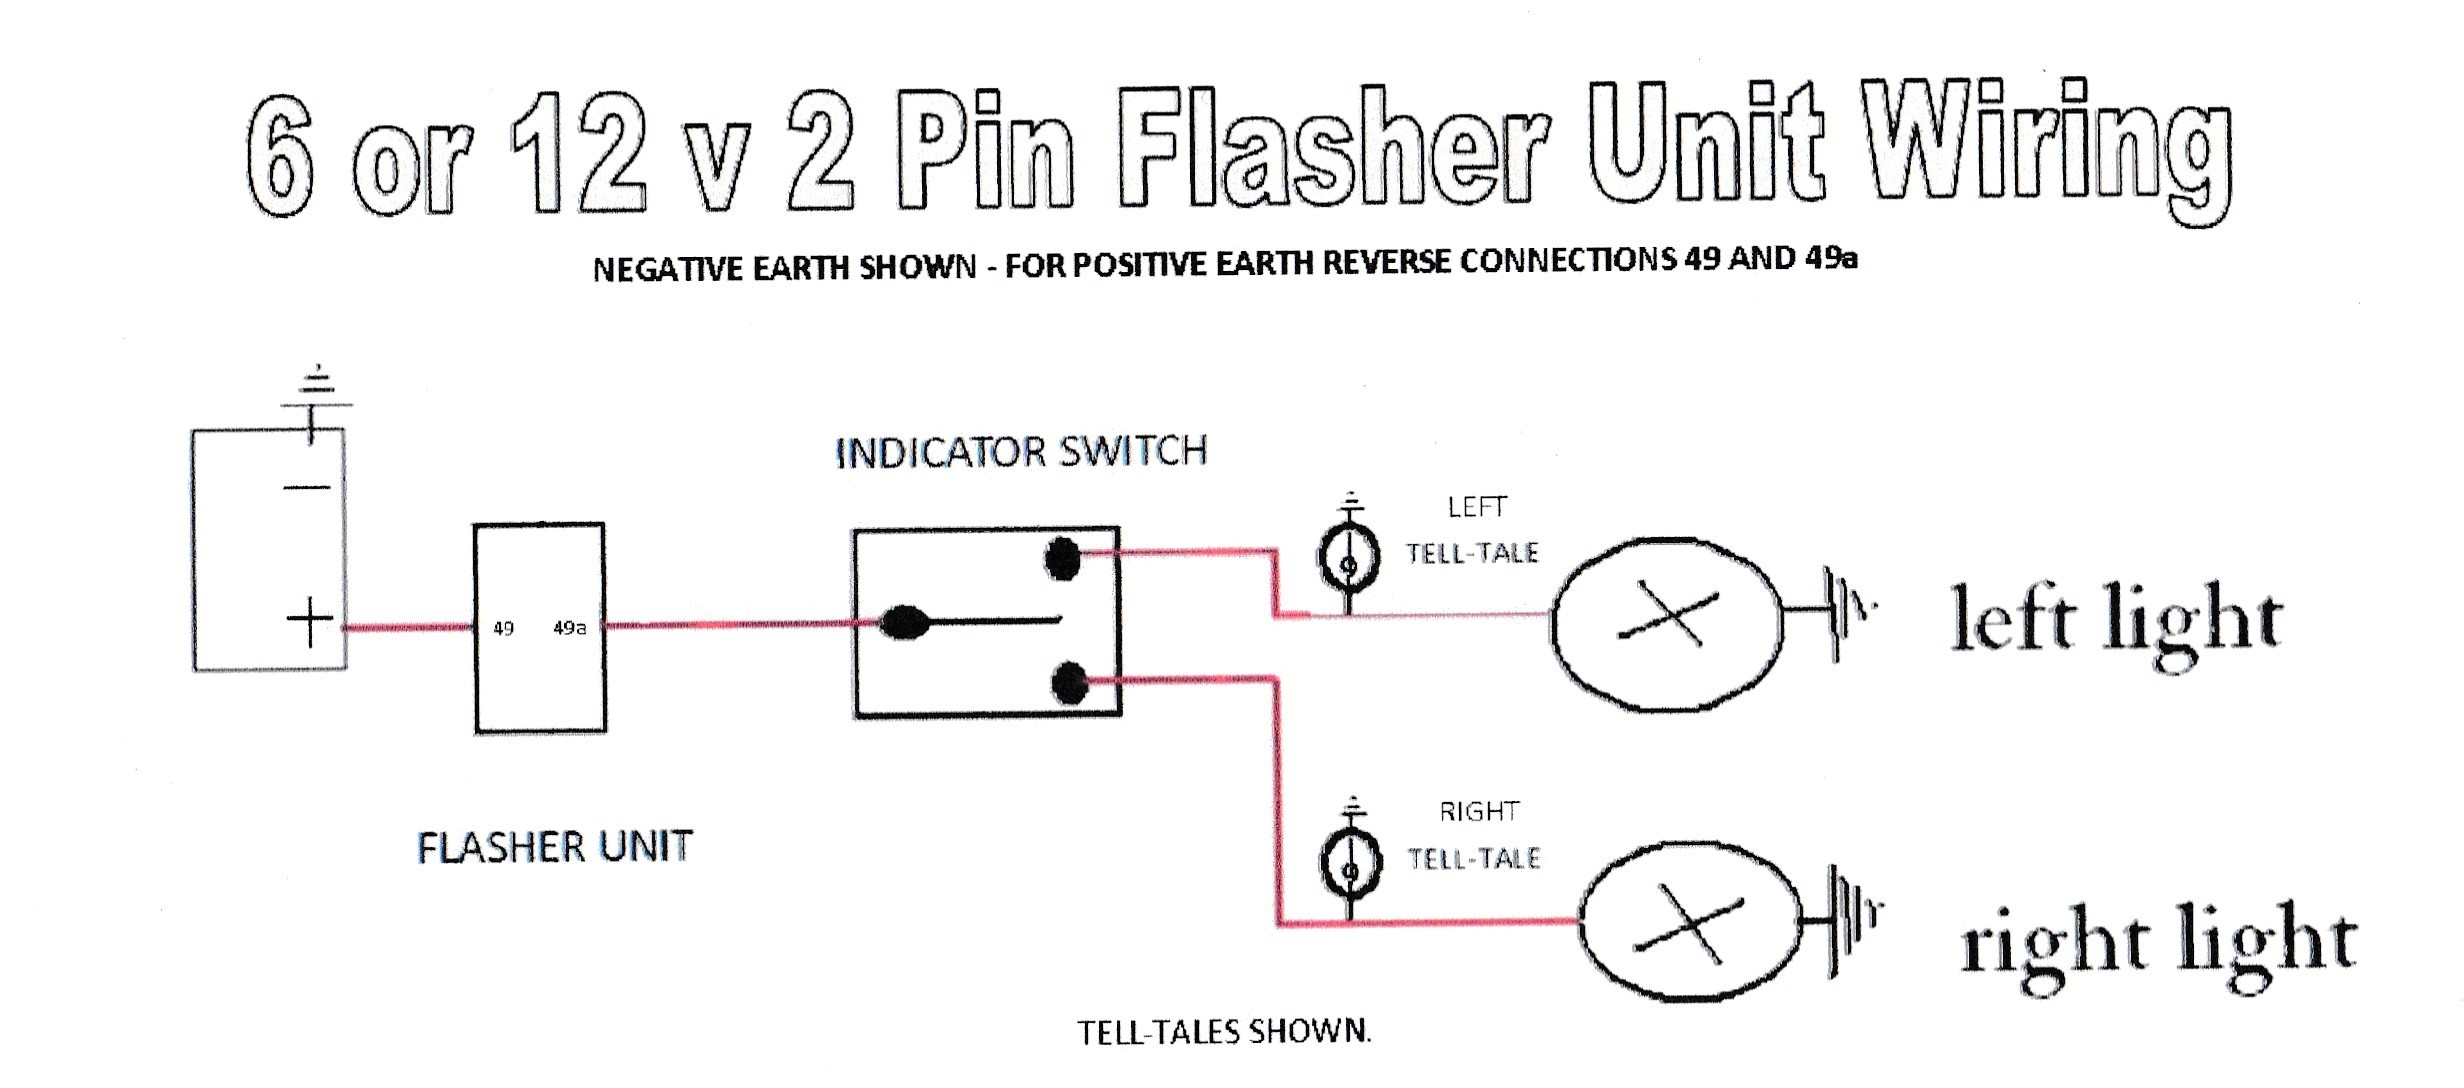 Signal Light Flasher Wiring Diagram Emergency Flasher Diagram for 2 Pin Relay Wiring Wiring Diagram Of Signal Light Flasher Wiring Diagram